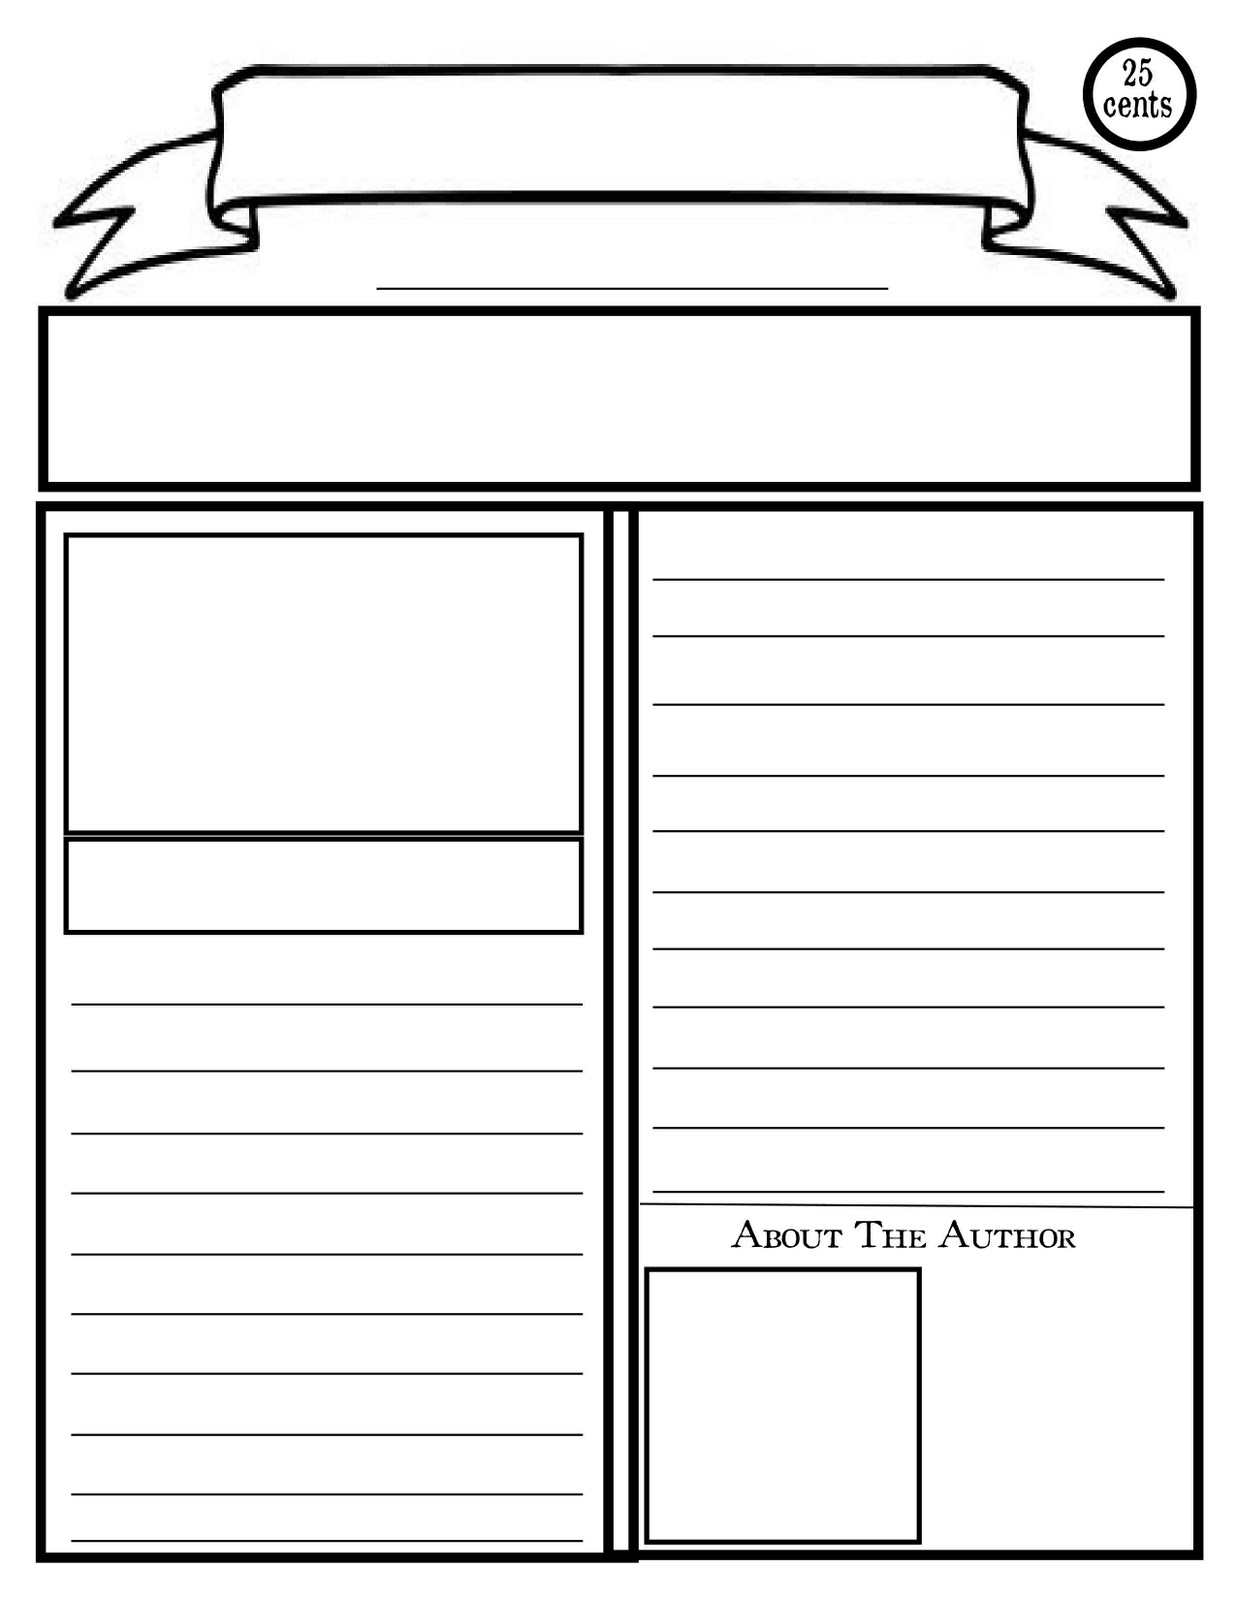 Newsletter clipart blank newspaper. Templates free simple template